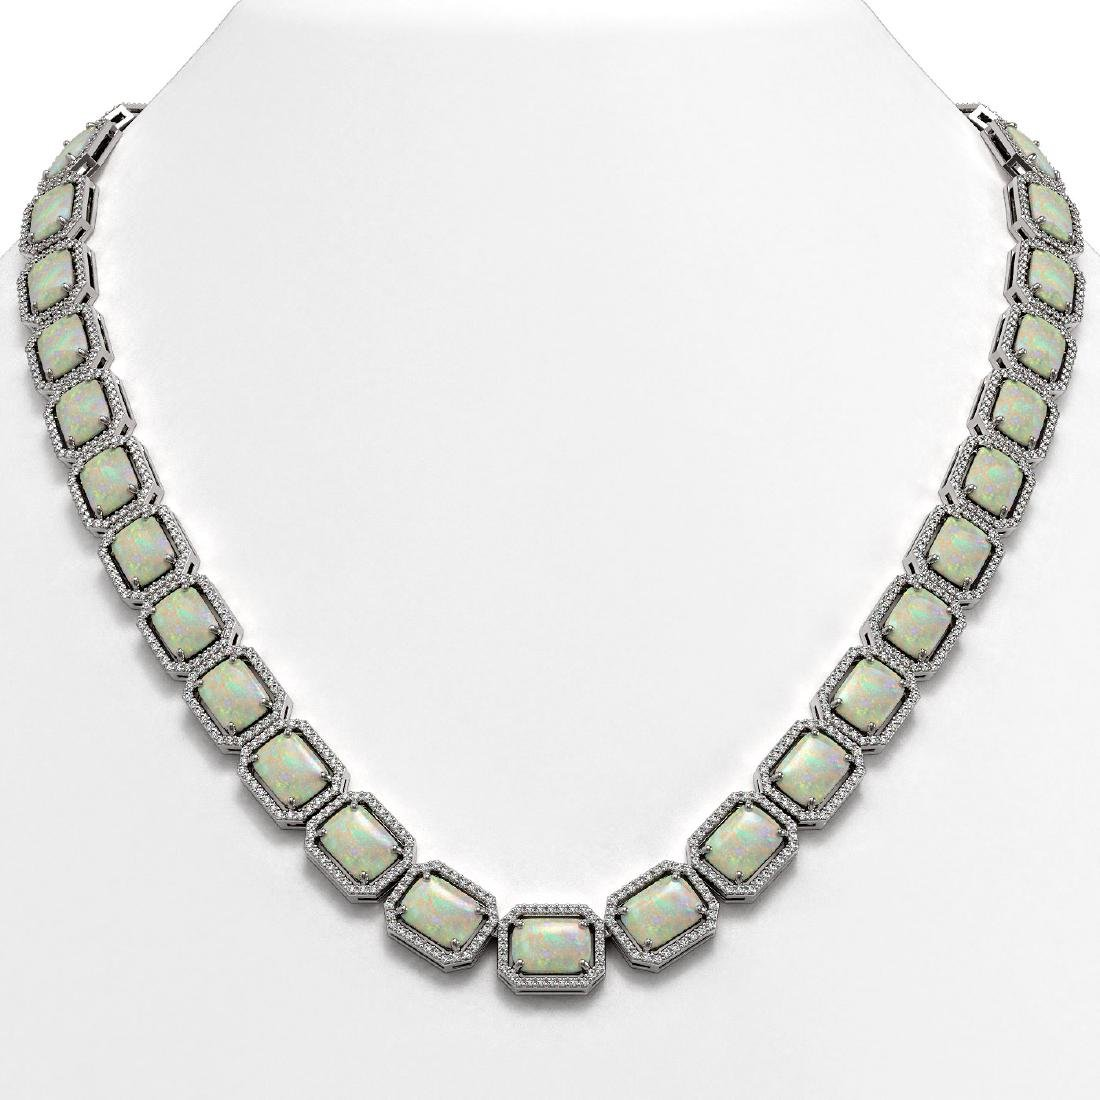 53.59 CTW Opal & Diamond Halo Necklace 10K White Gold